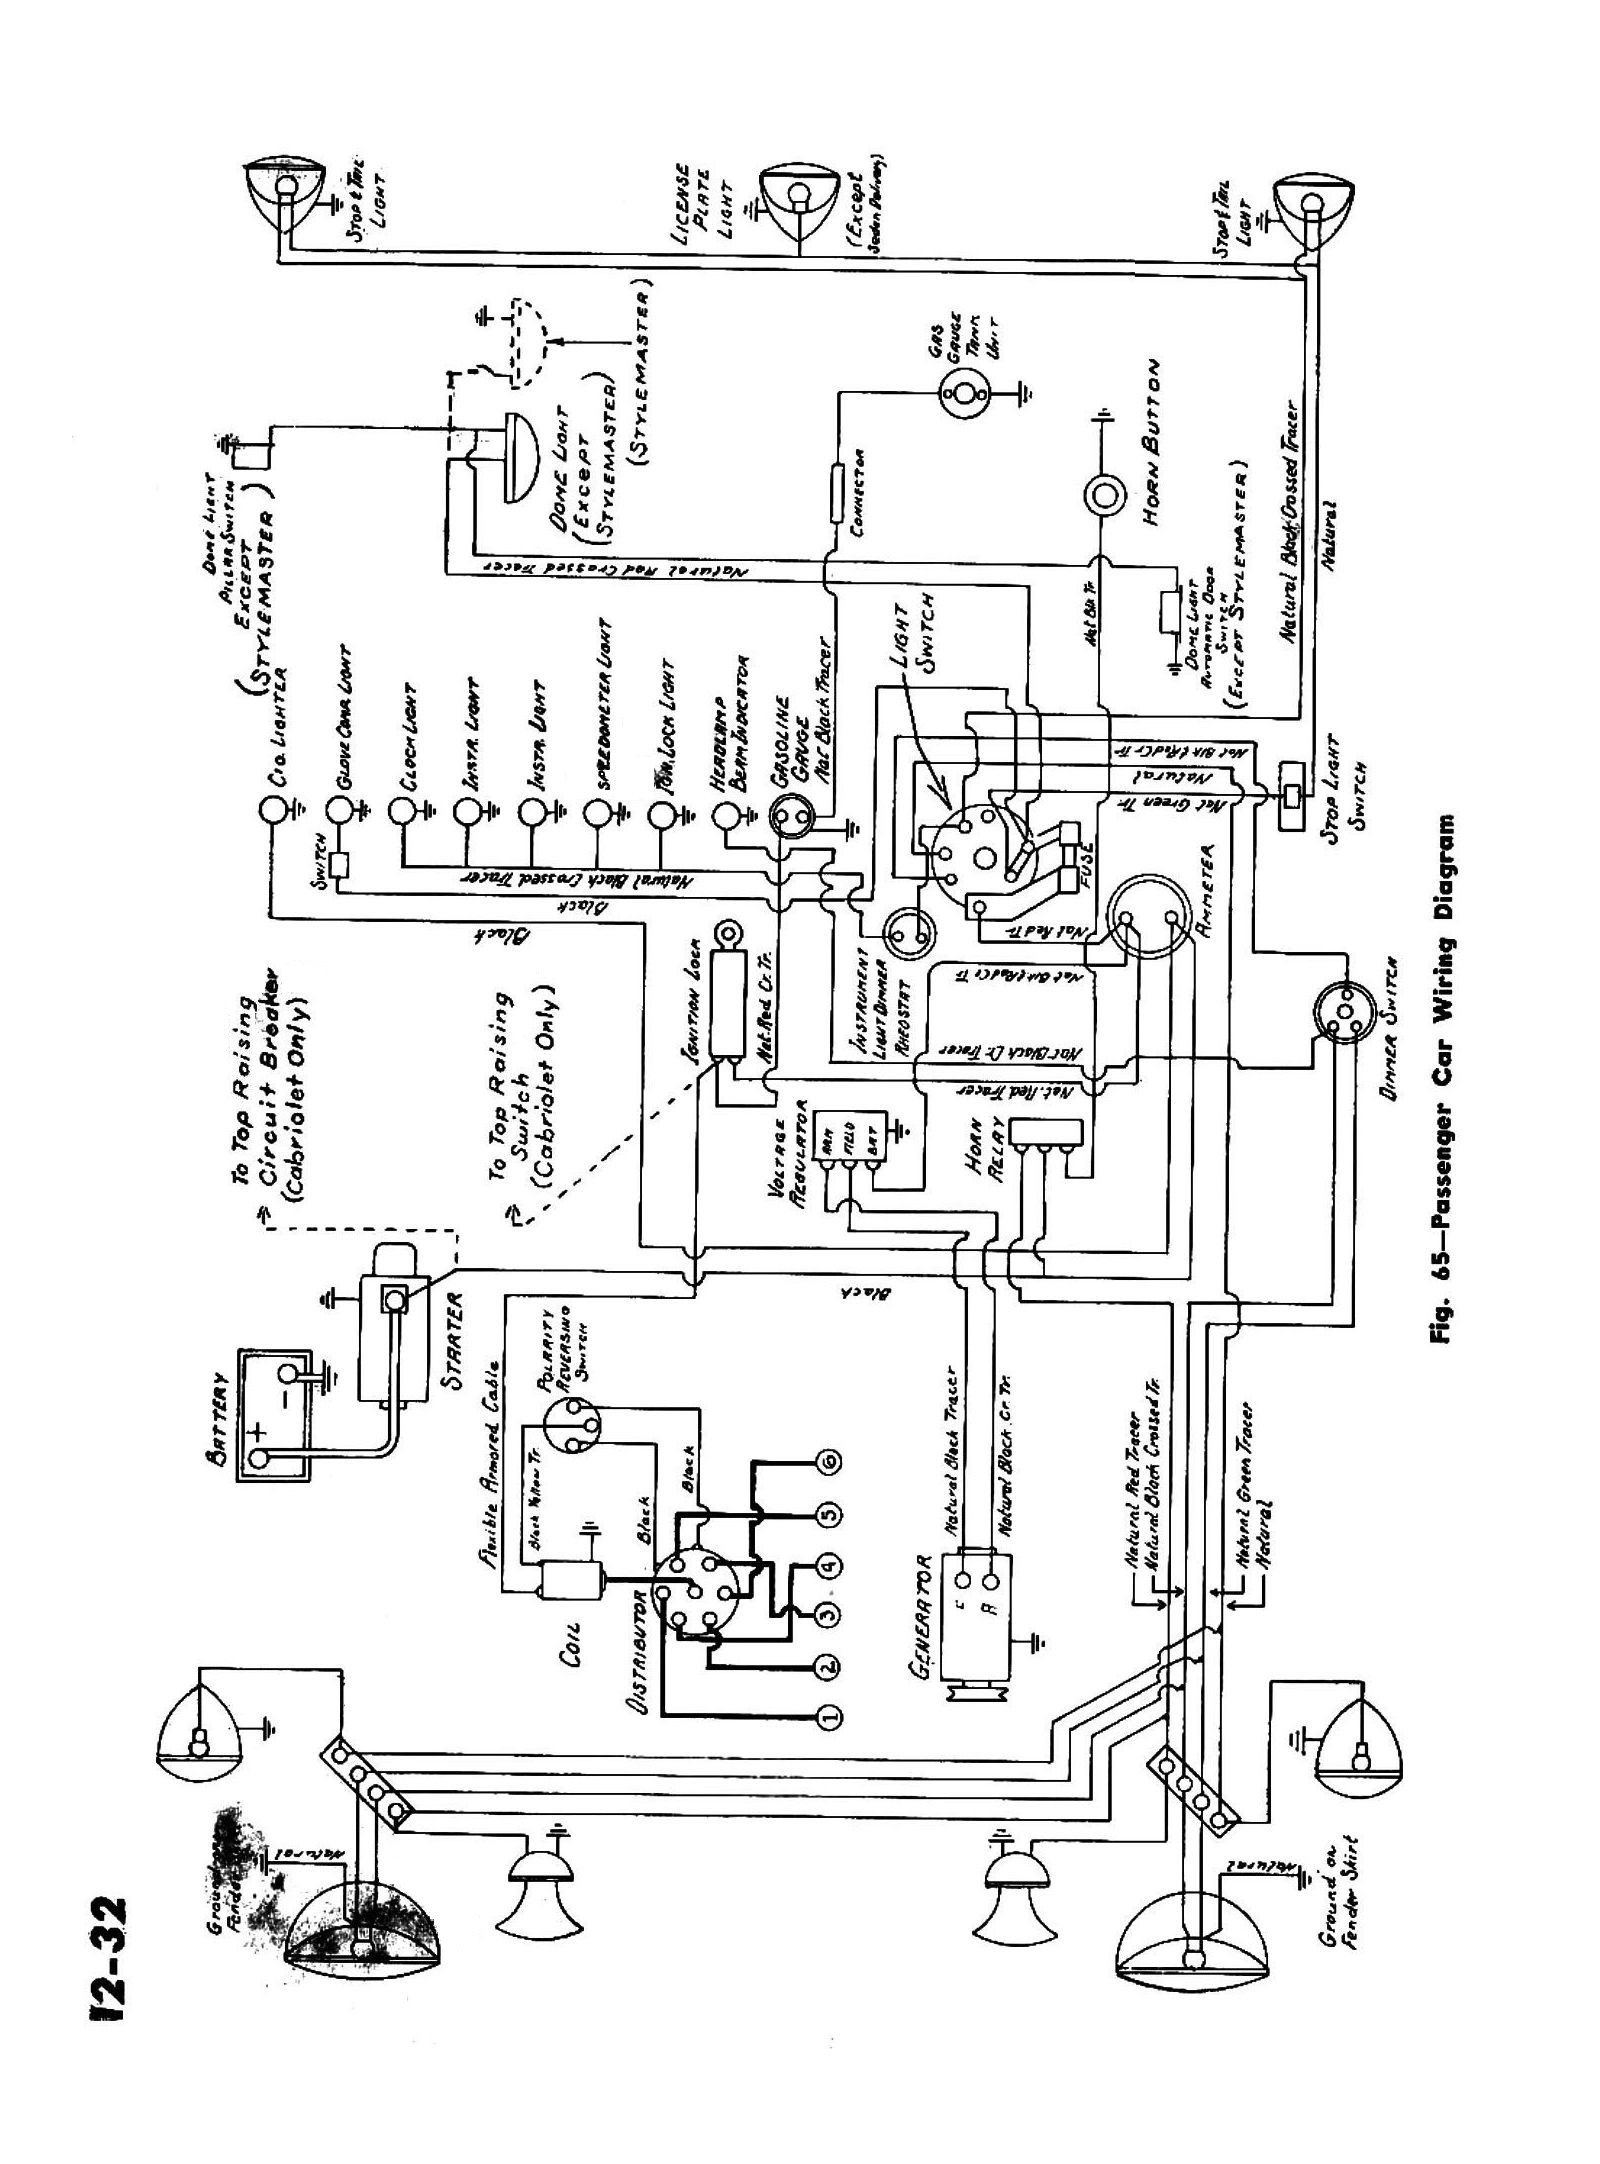 car wiring diagrams wire data schema u2022 rh richtech co wiring diagrams for automotive free wiring diagrams for cars